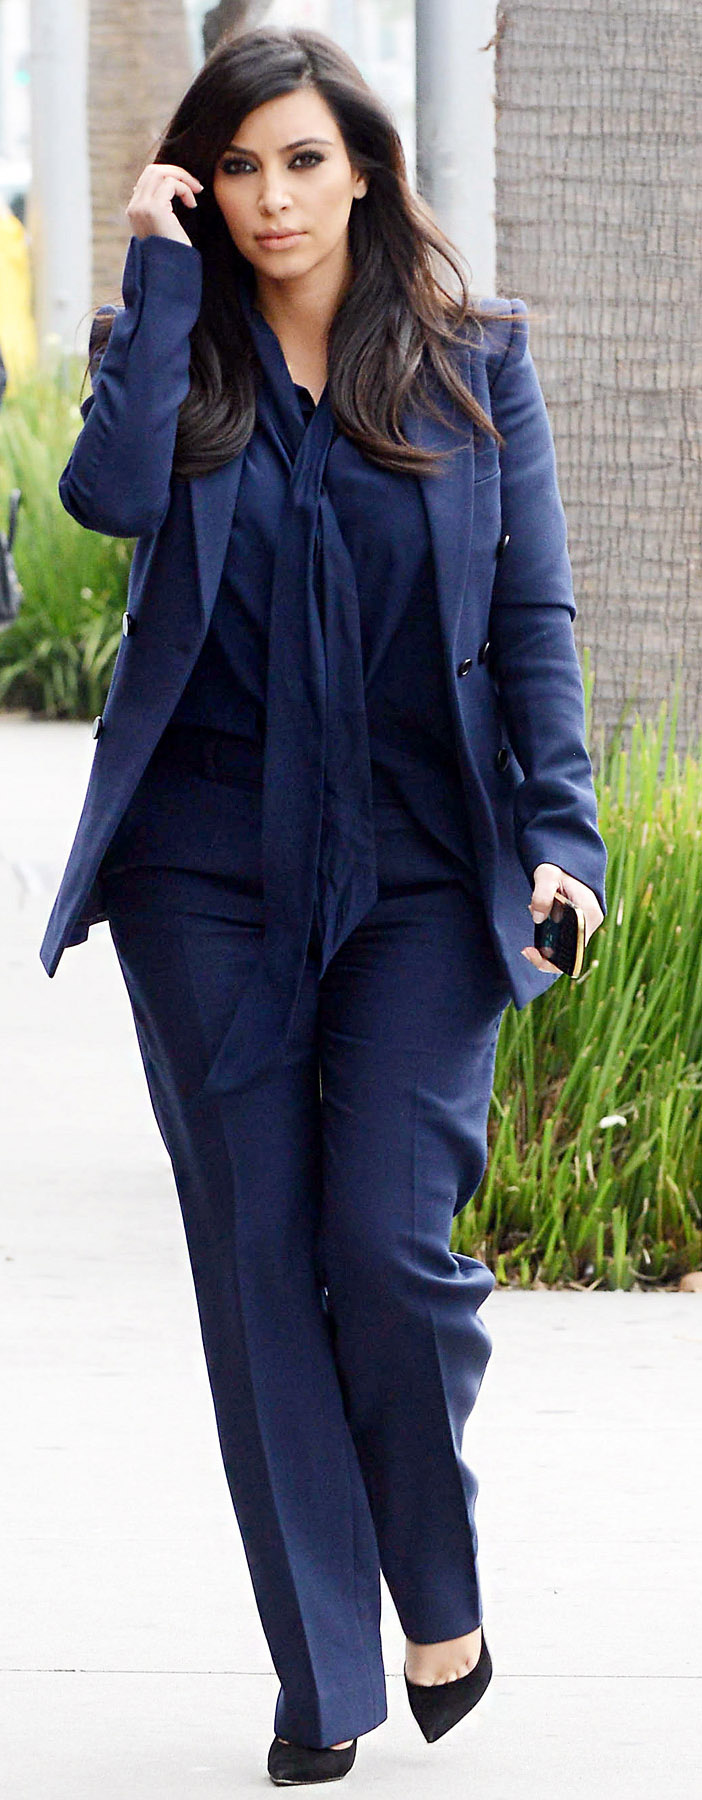 blue-navy-wideleg-pants-blue-navy-top-blouse-blue-navy-jacket-blazer-suit-mono-black-shoe-pumps-kimkardashian-brun-fall-winter-work.jpg